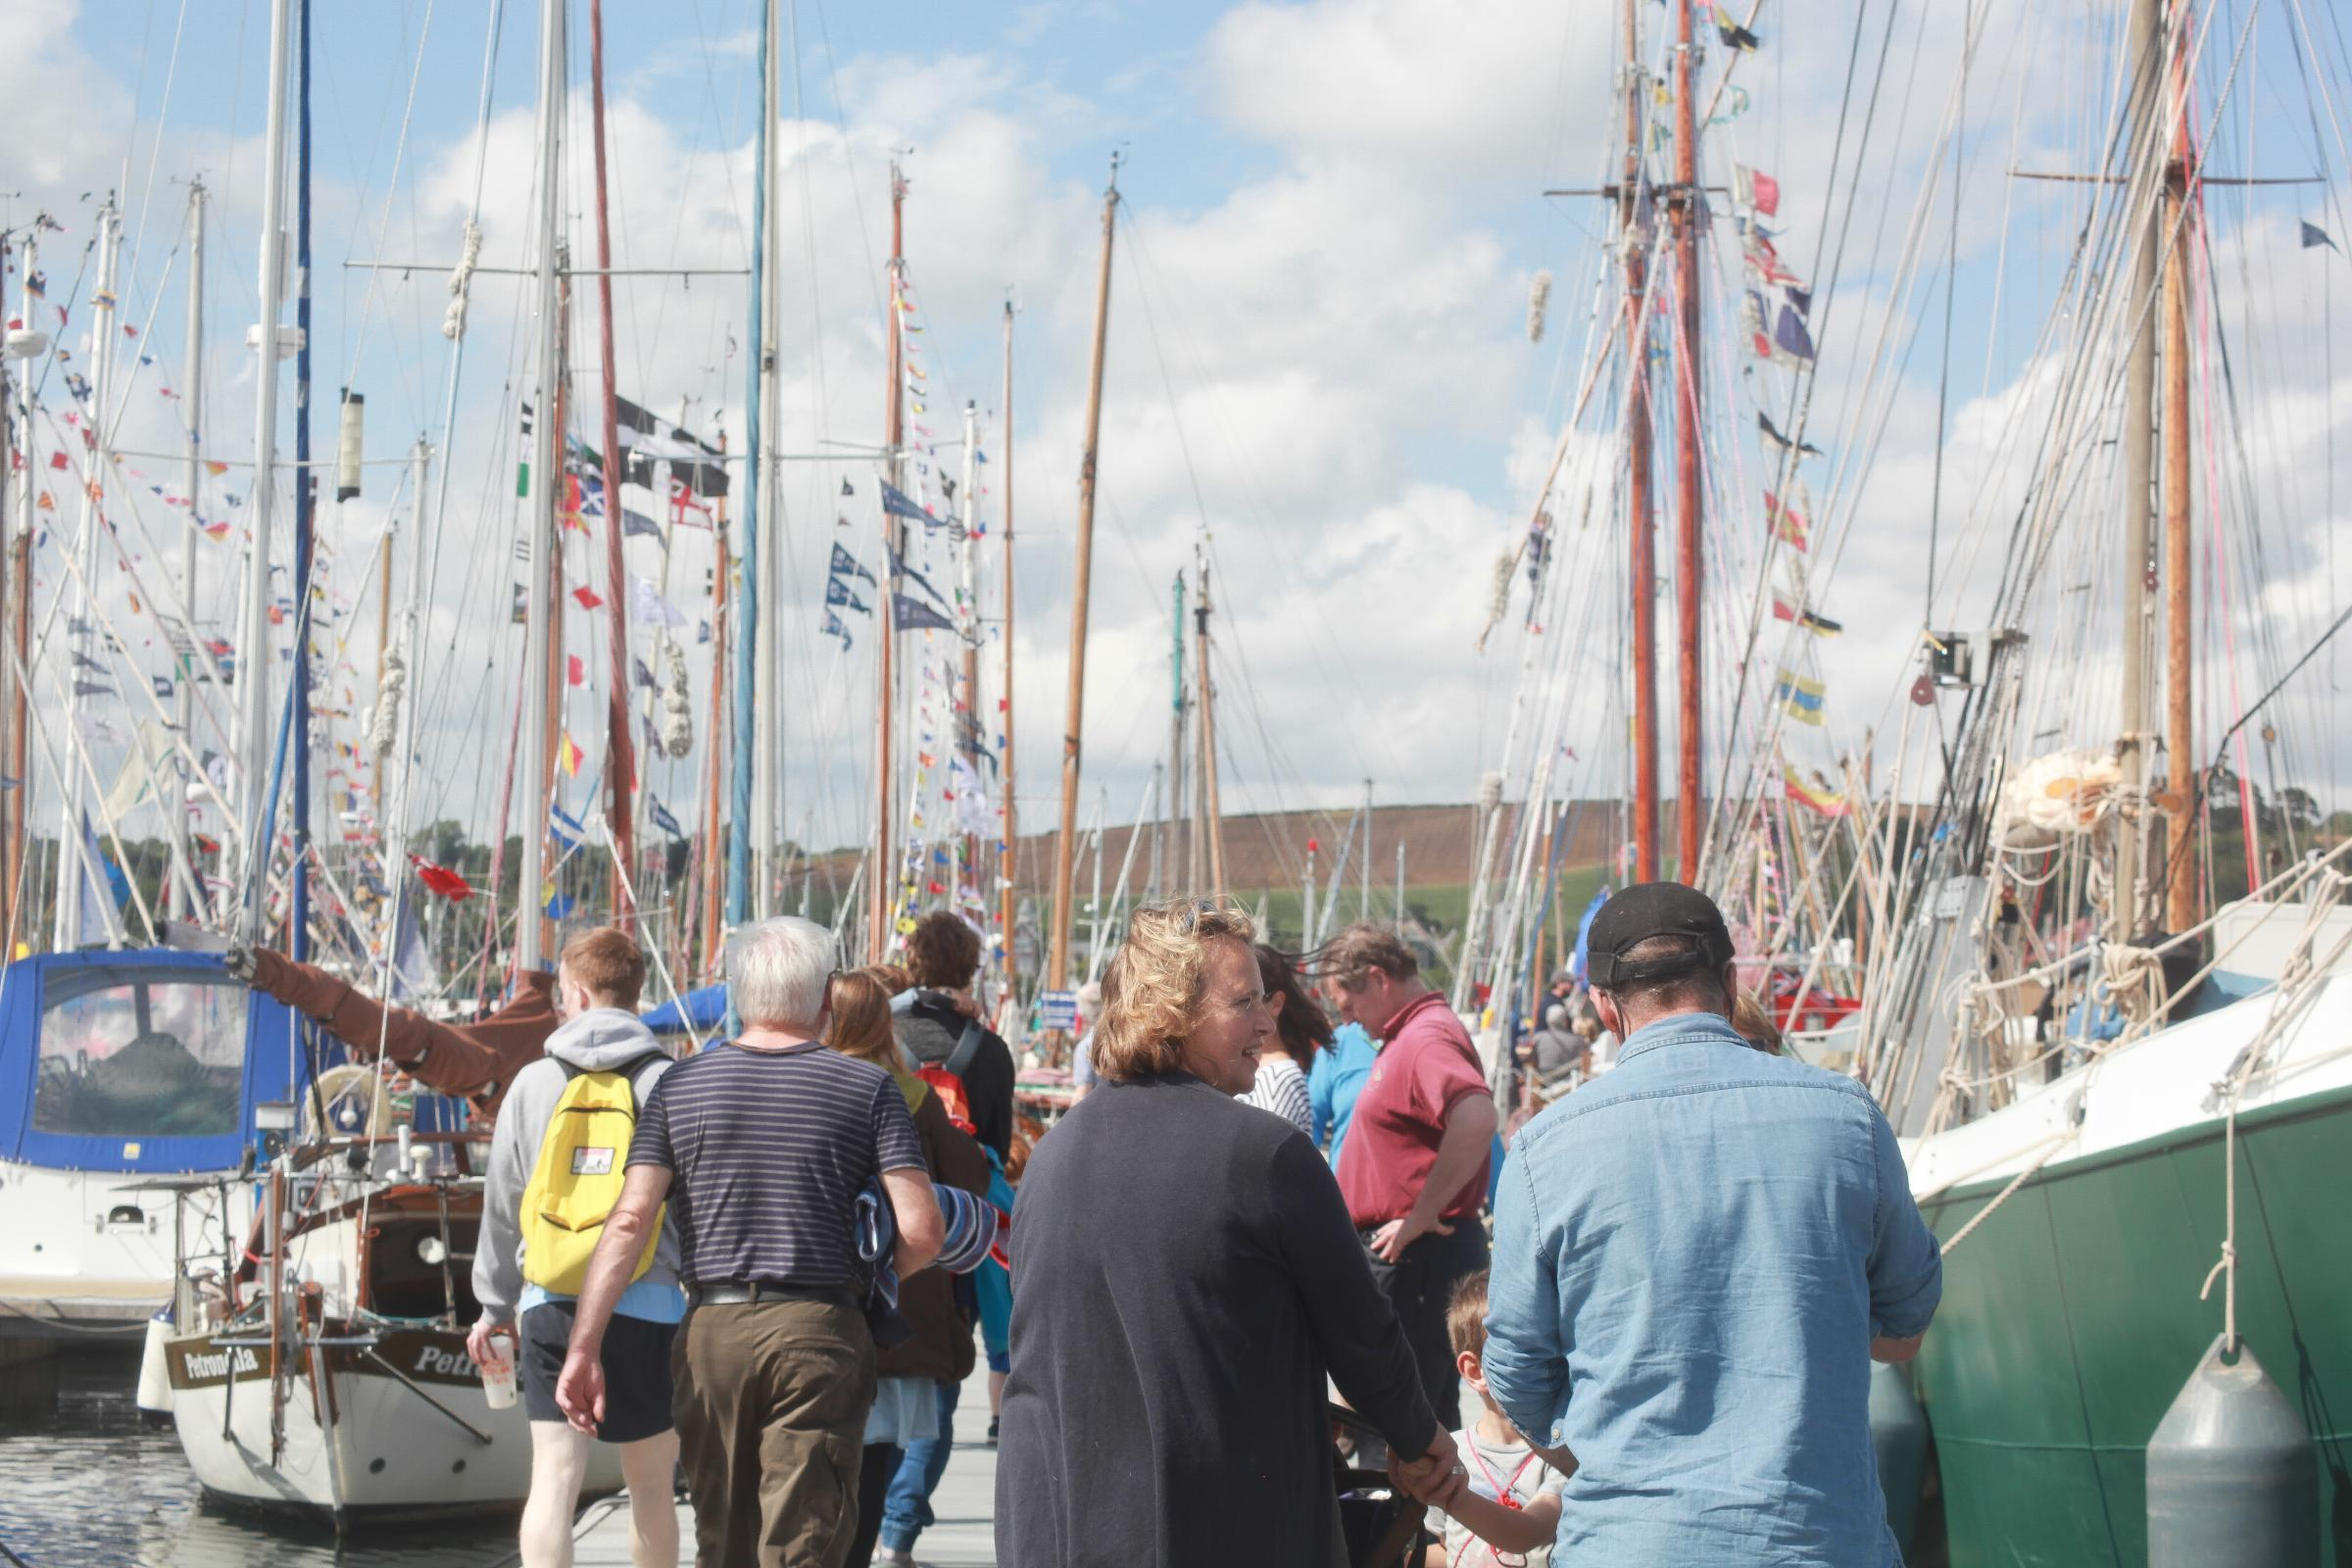 Falmouth Classics 2019 hailed a 'spectacular event'